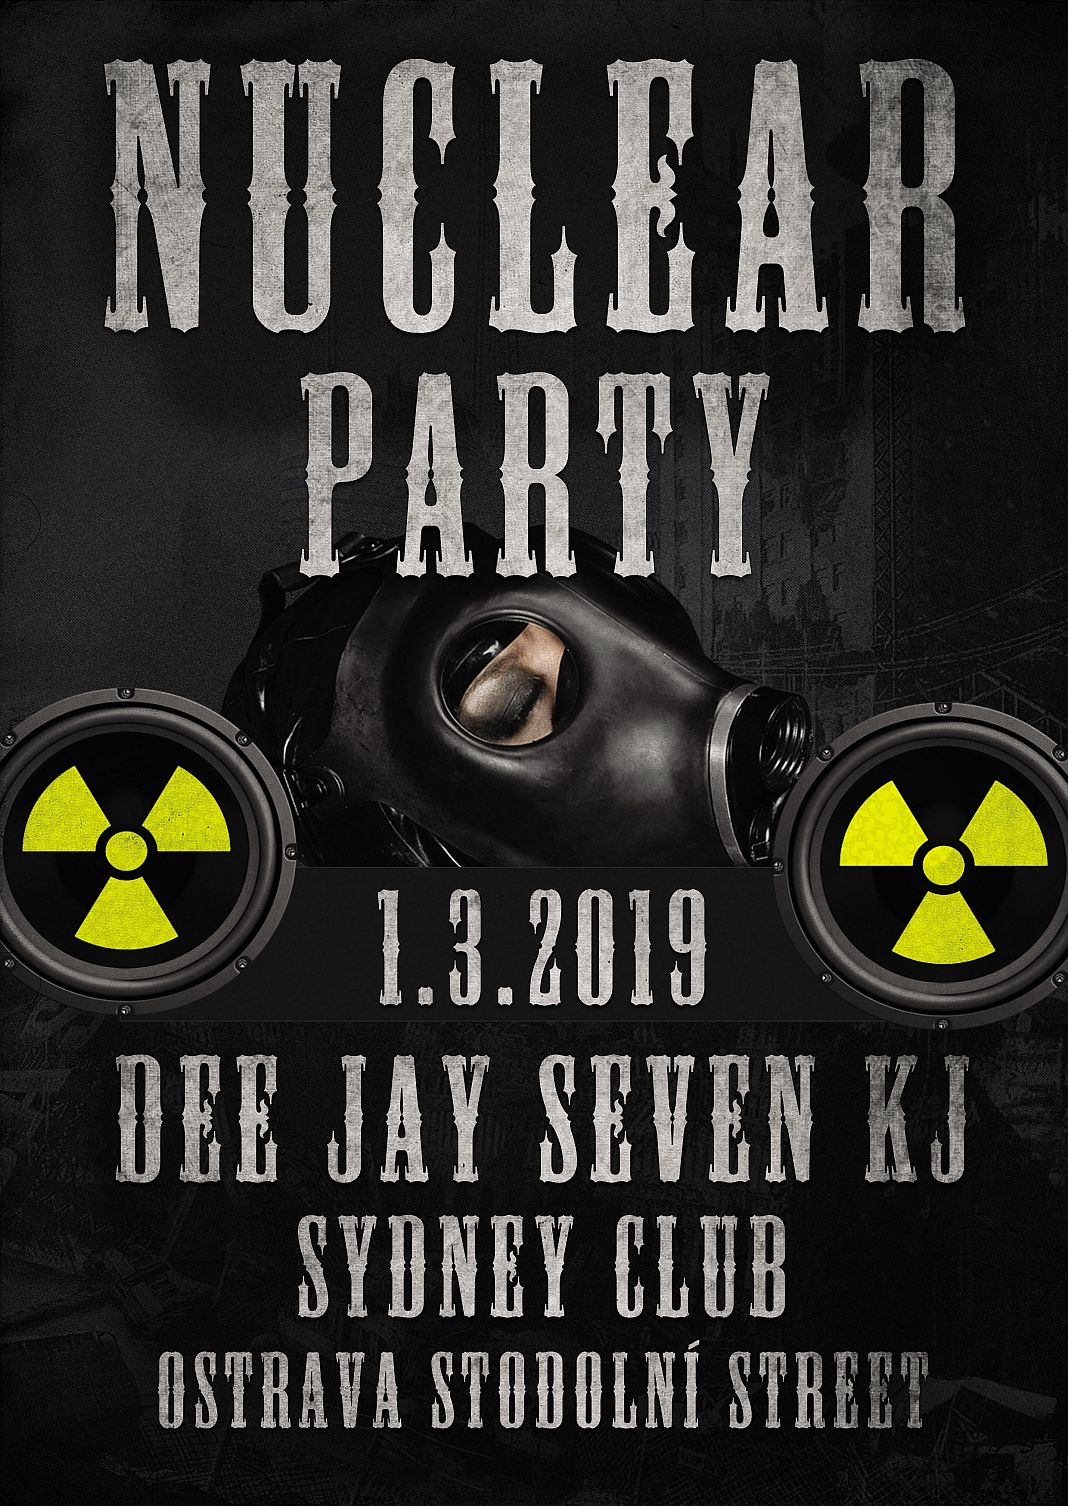 Nuclear-Party-Sevenkj